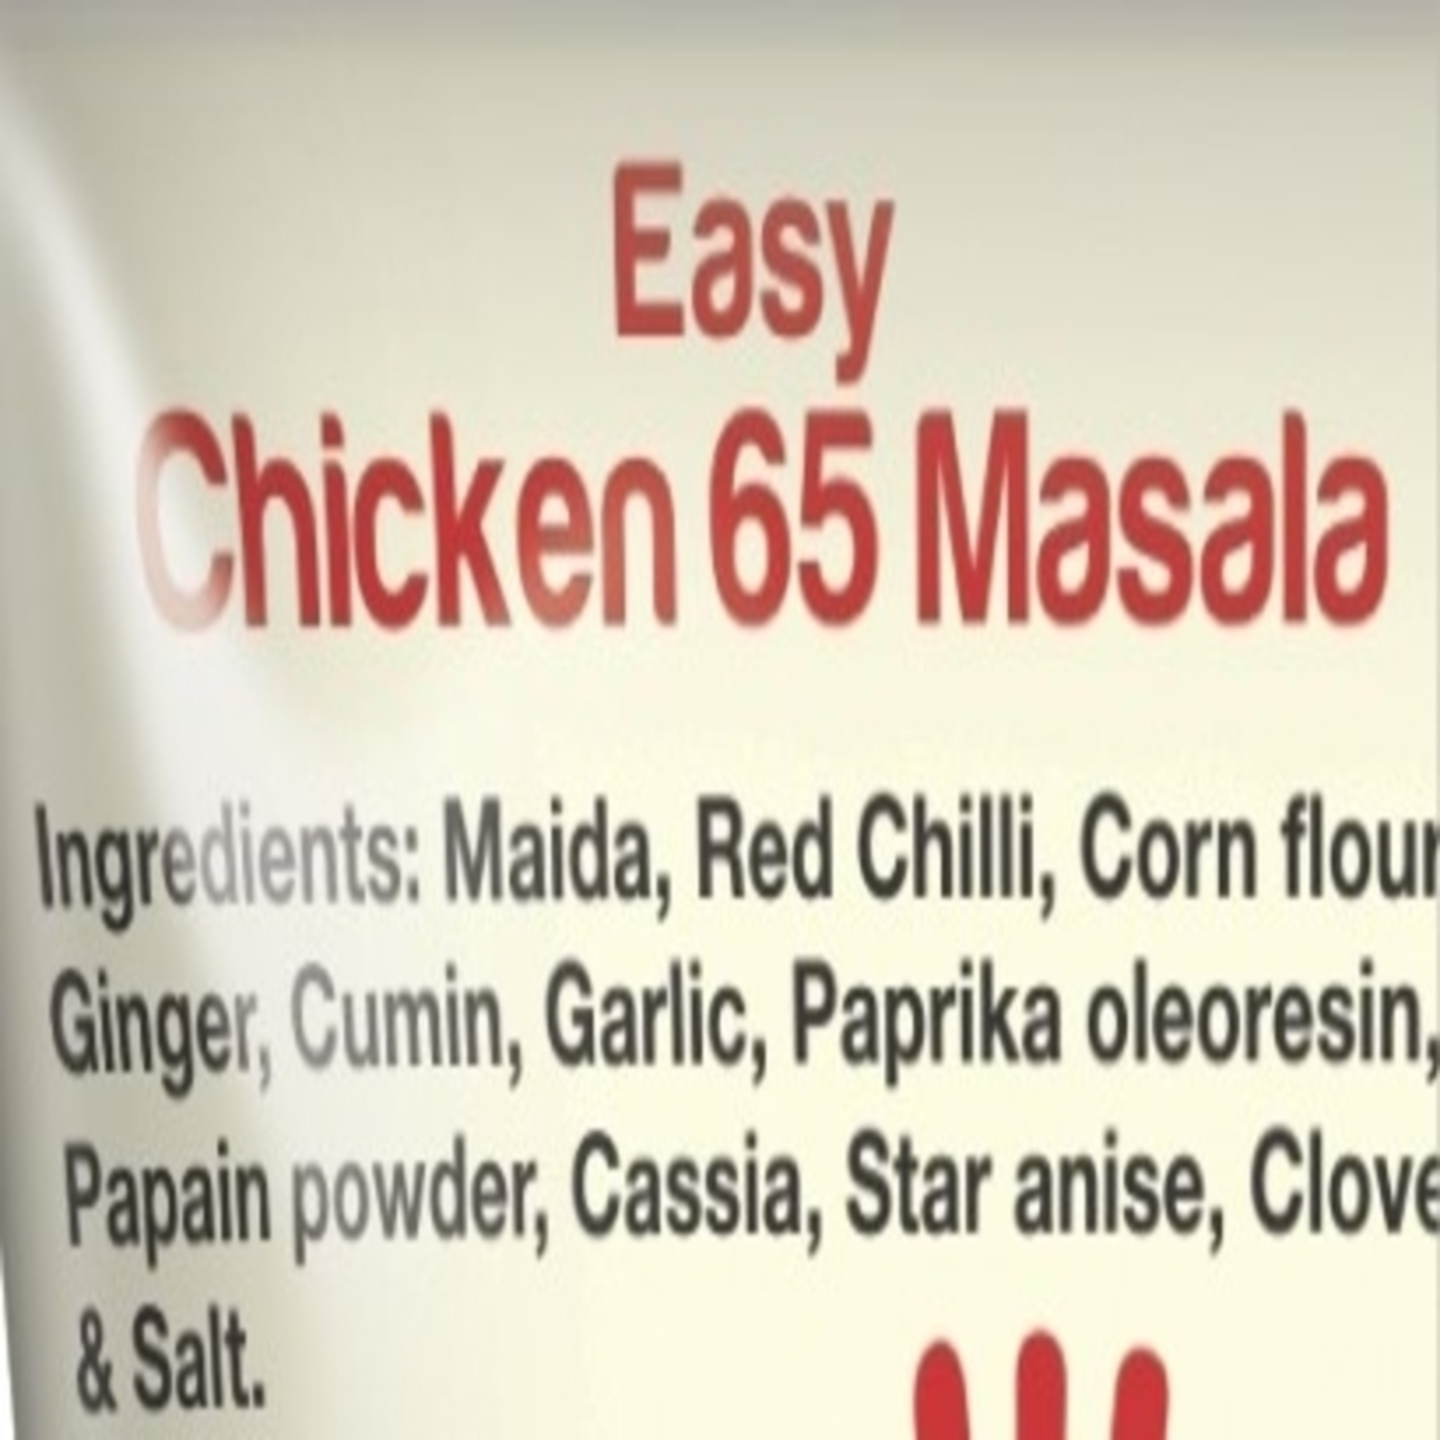 Thillais Easy Chicken65 Mix